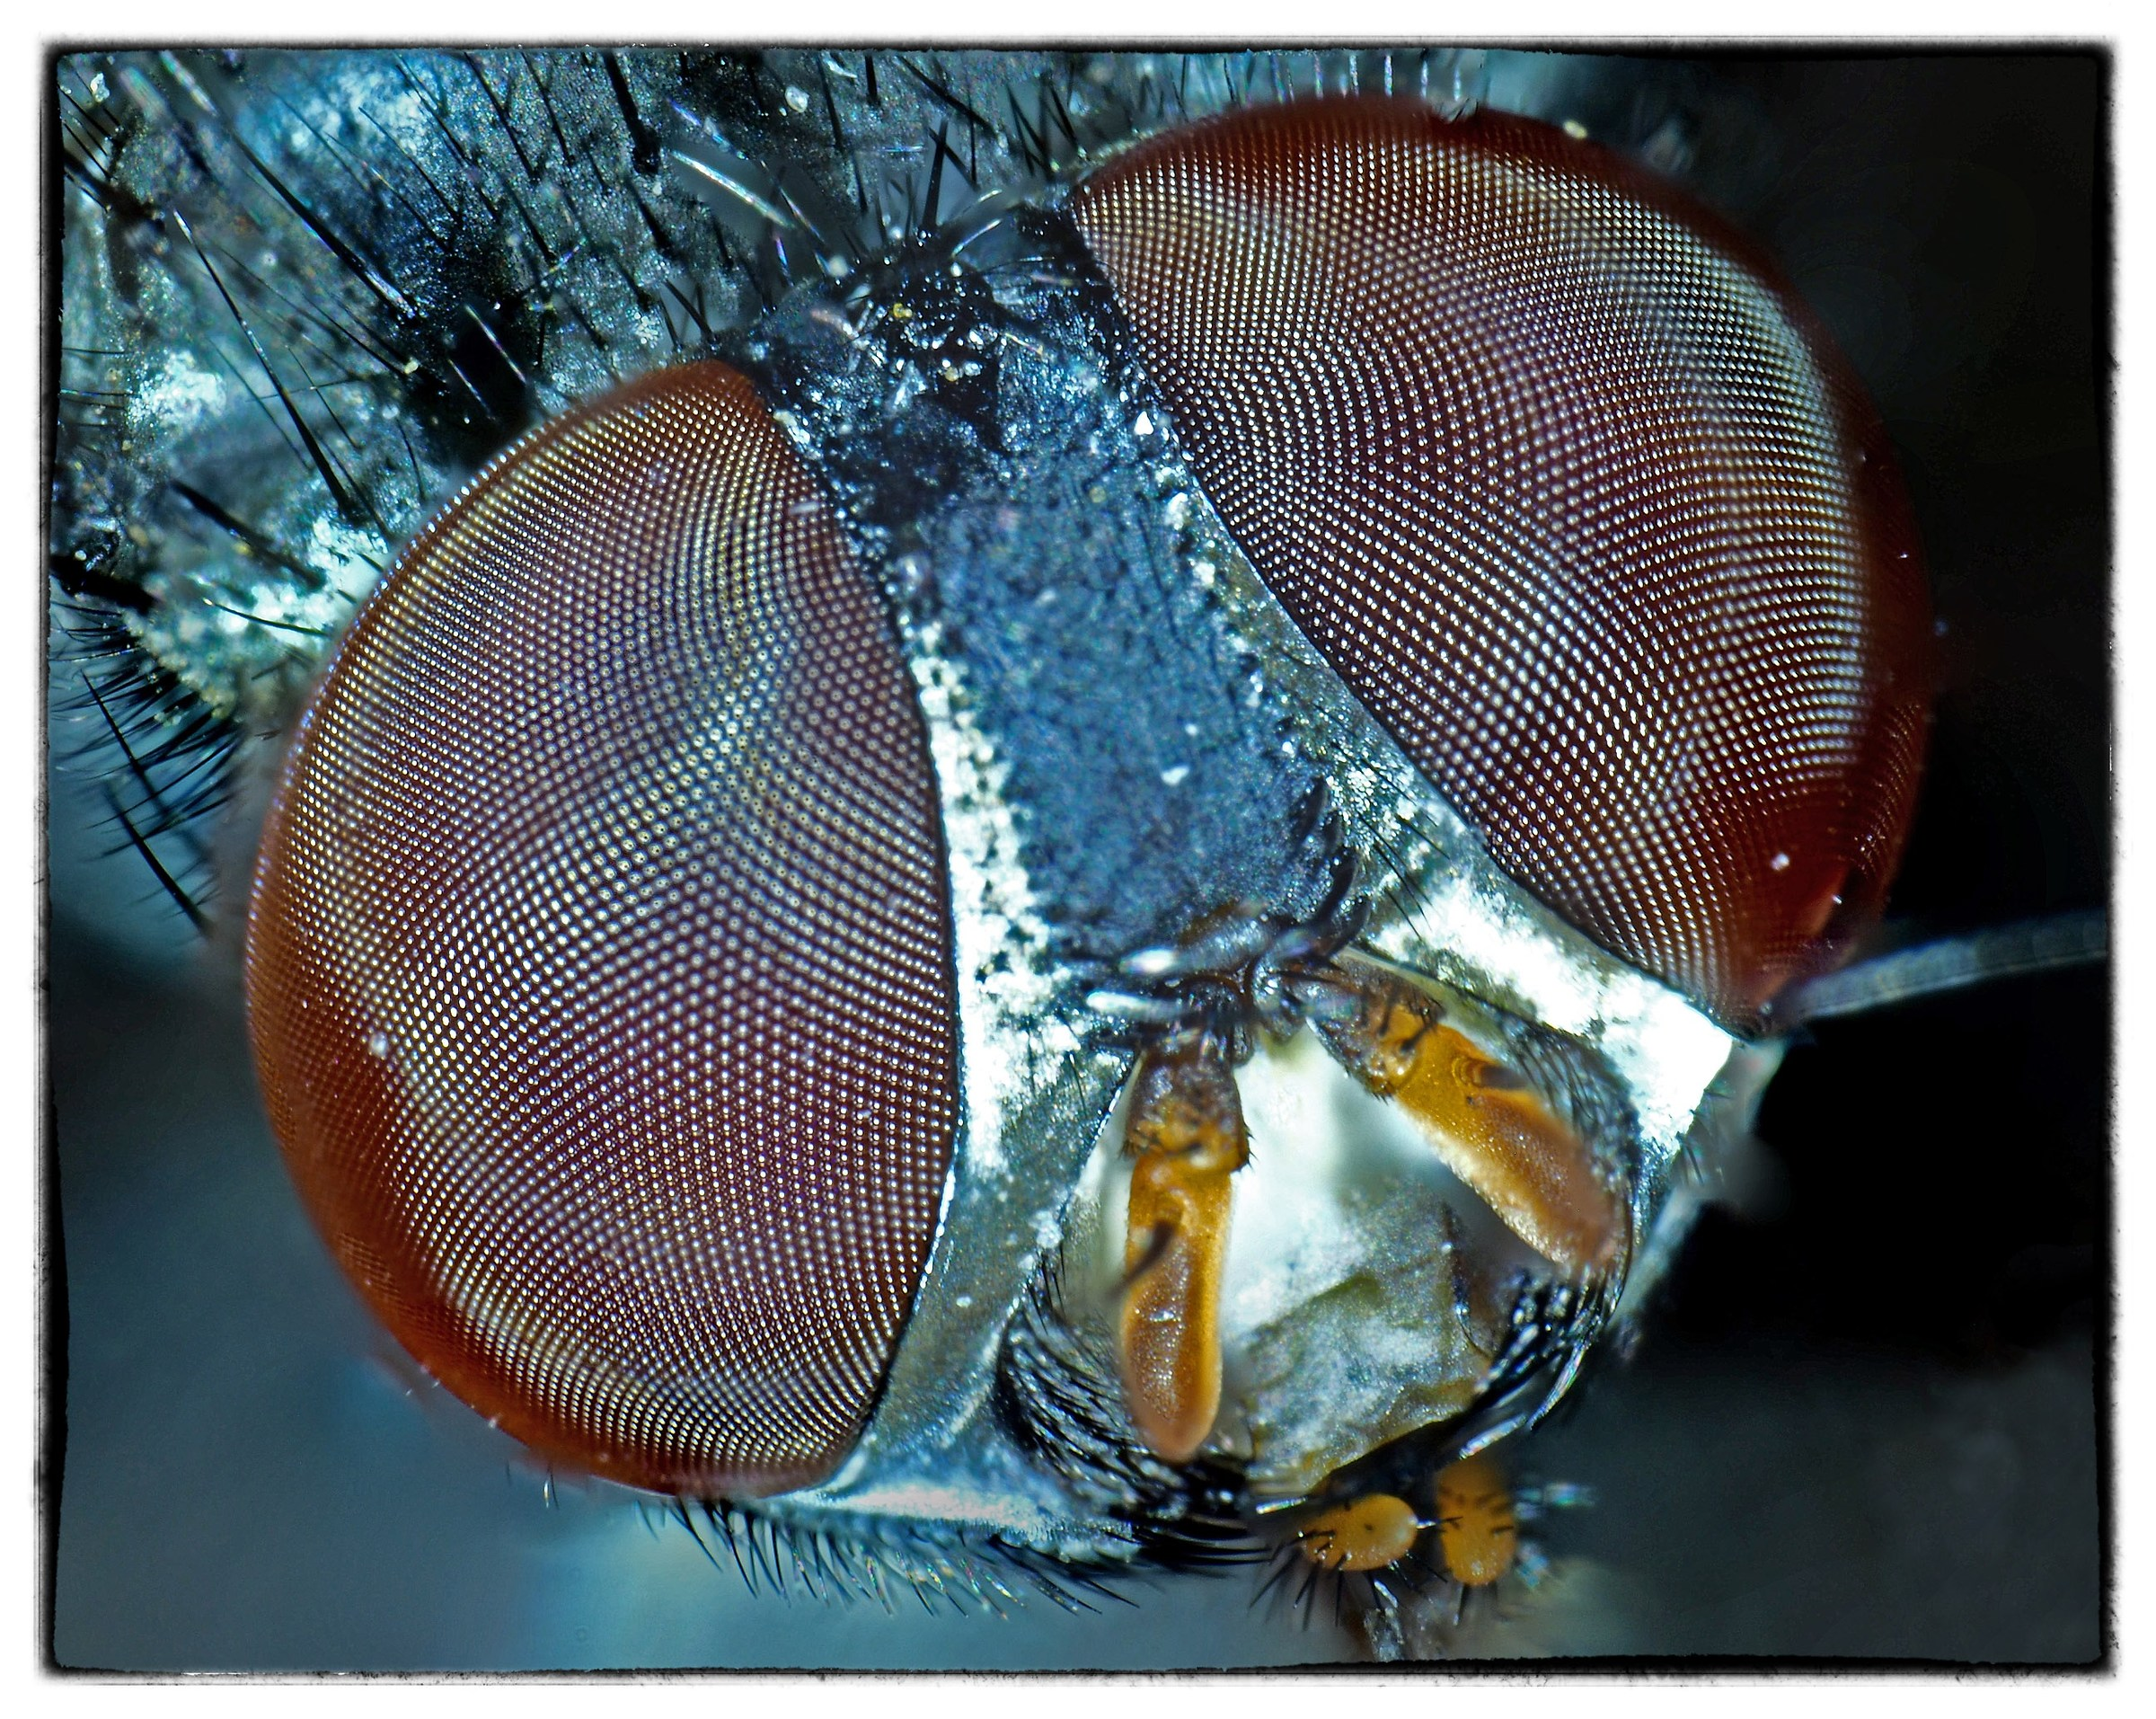 The fly...